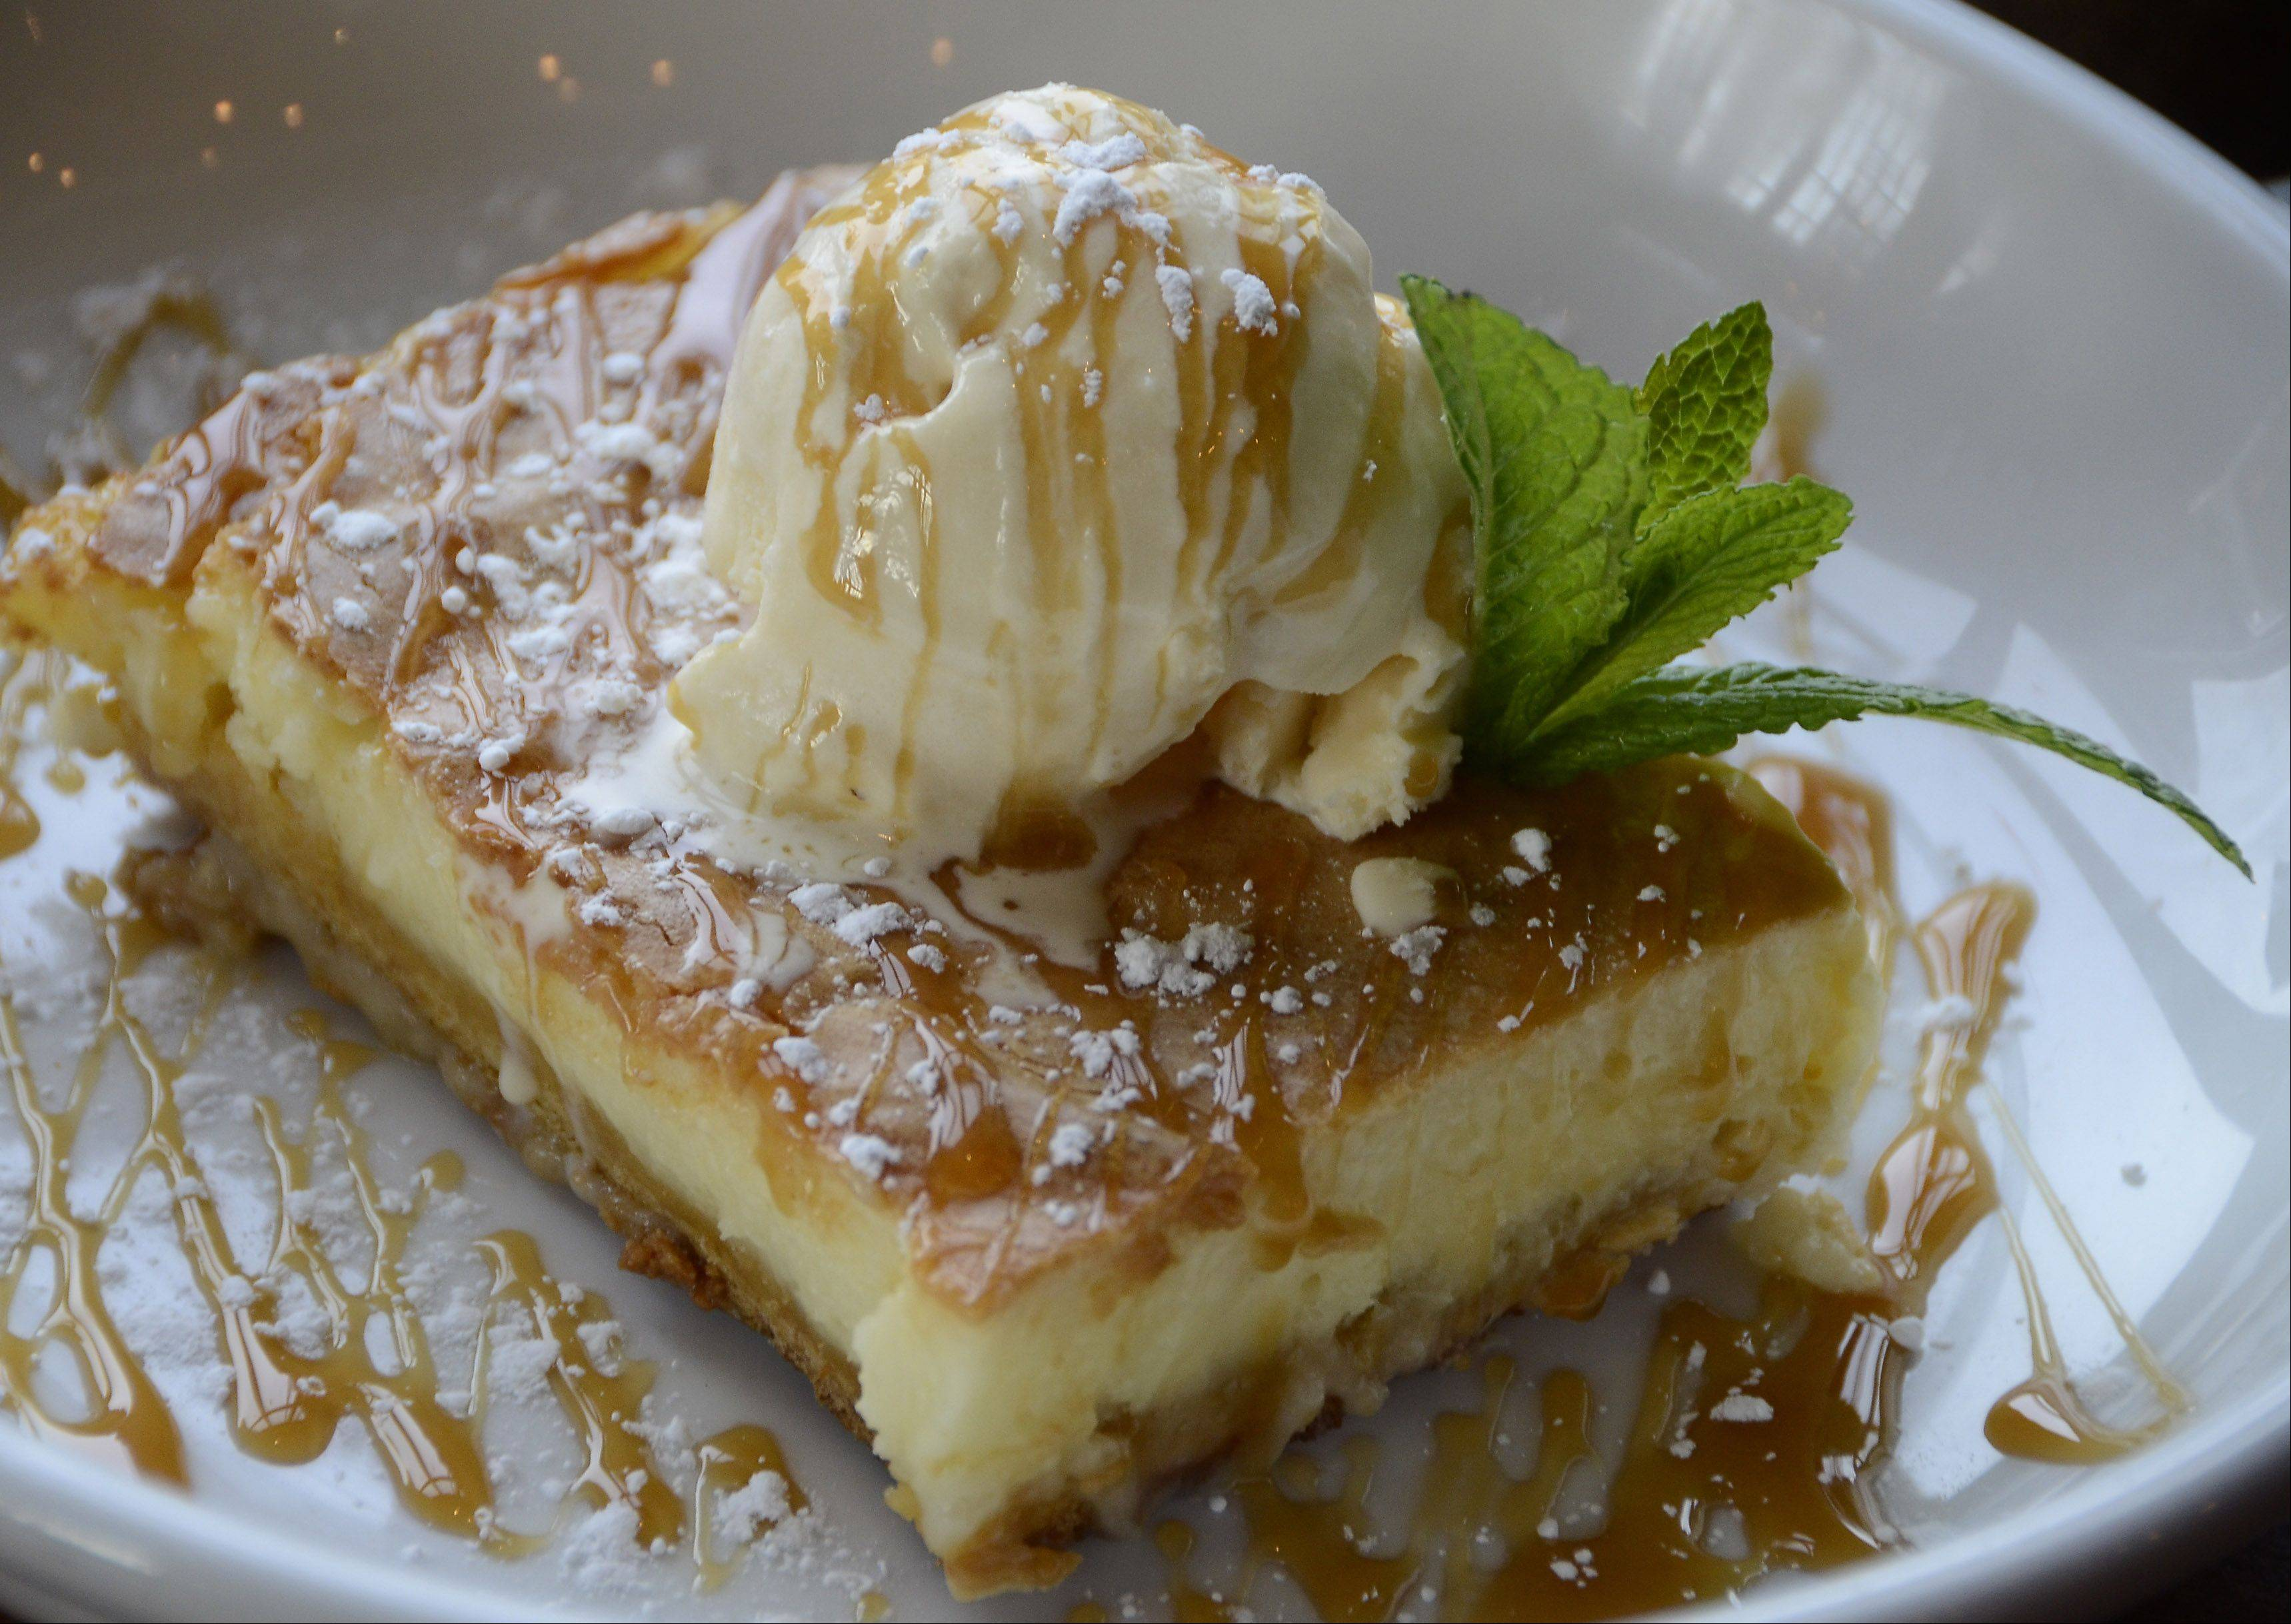 Save room for Park Tavern's ooey-gooey butter cake.